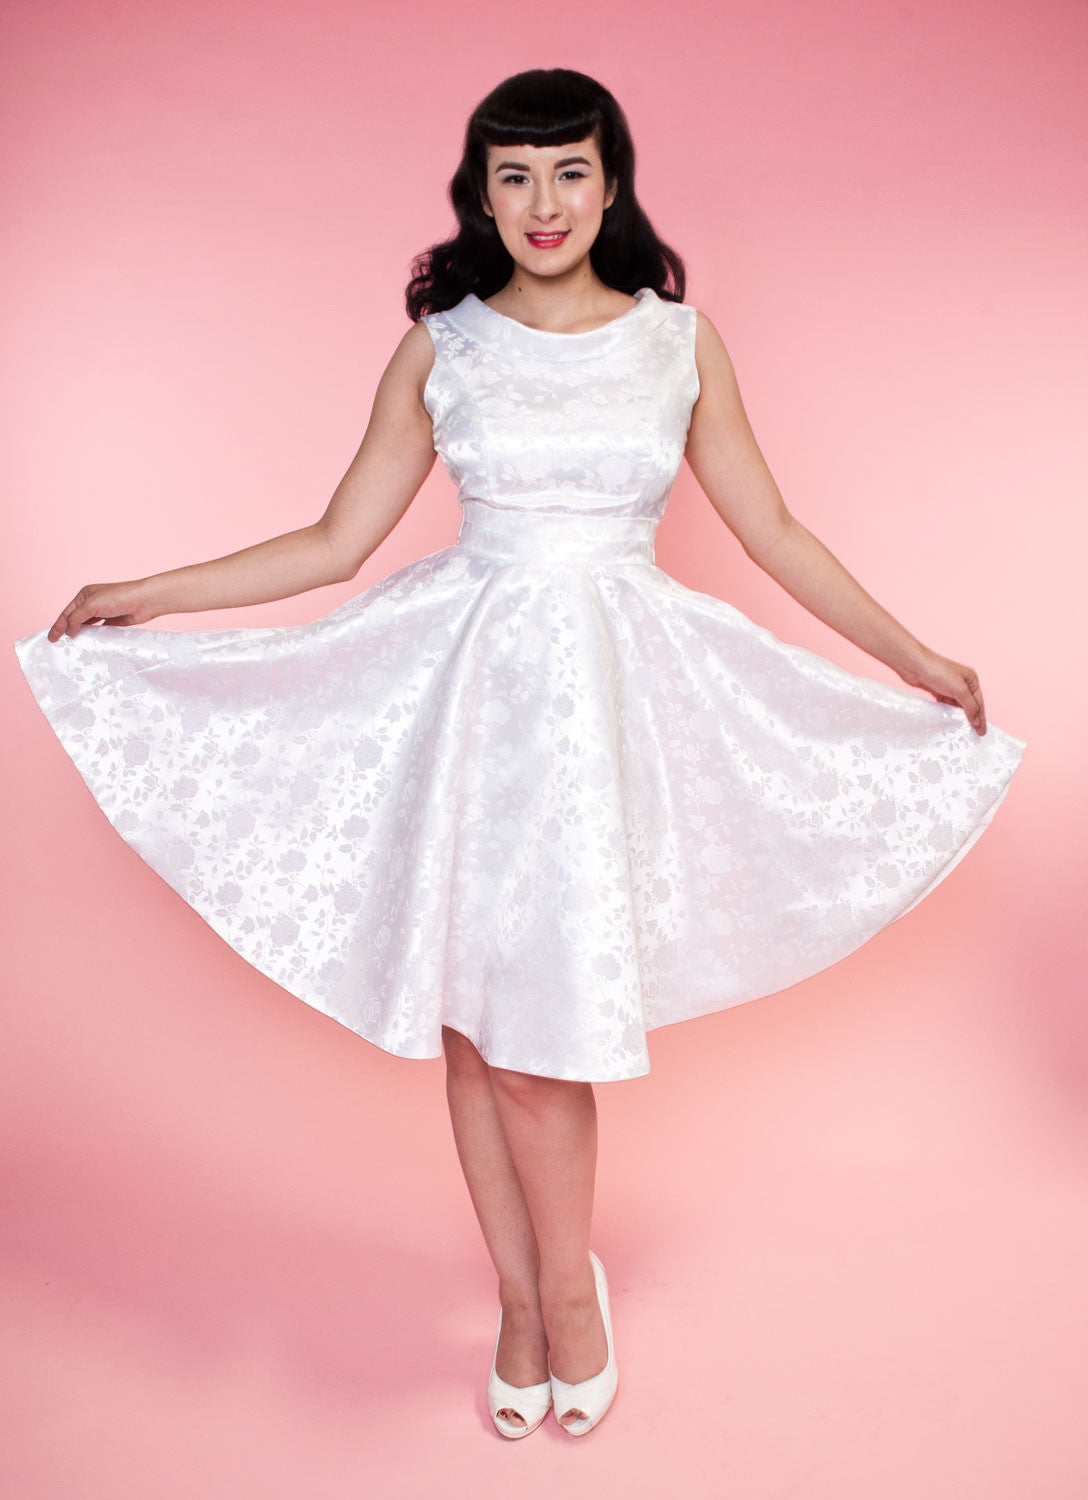 BP Suzette Dress - Pearl Embossed Floral - Heart of Haute  - 6